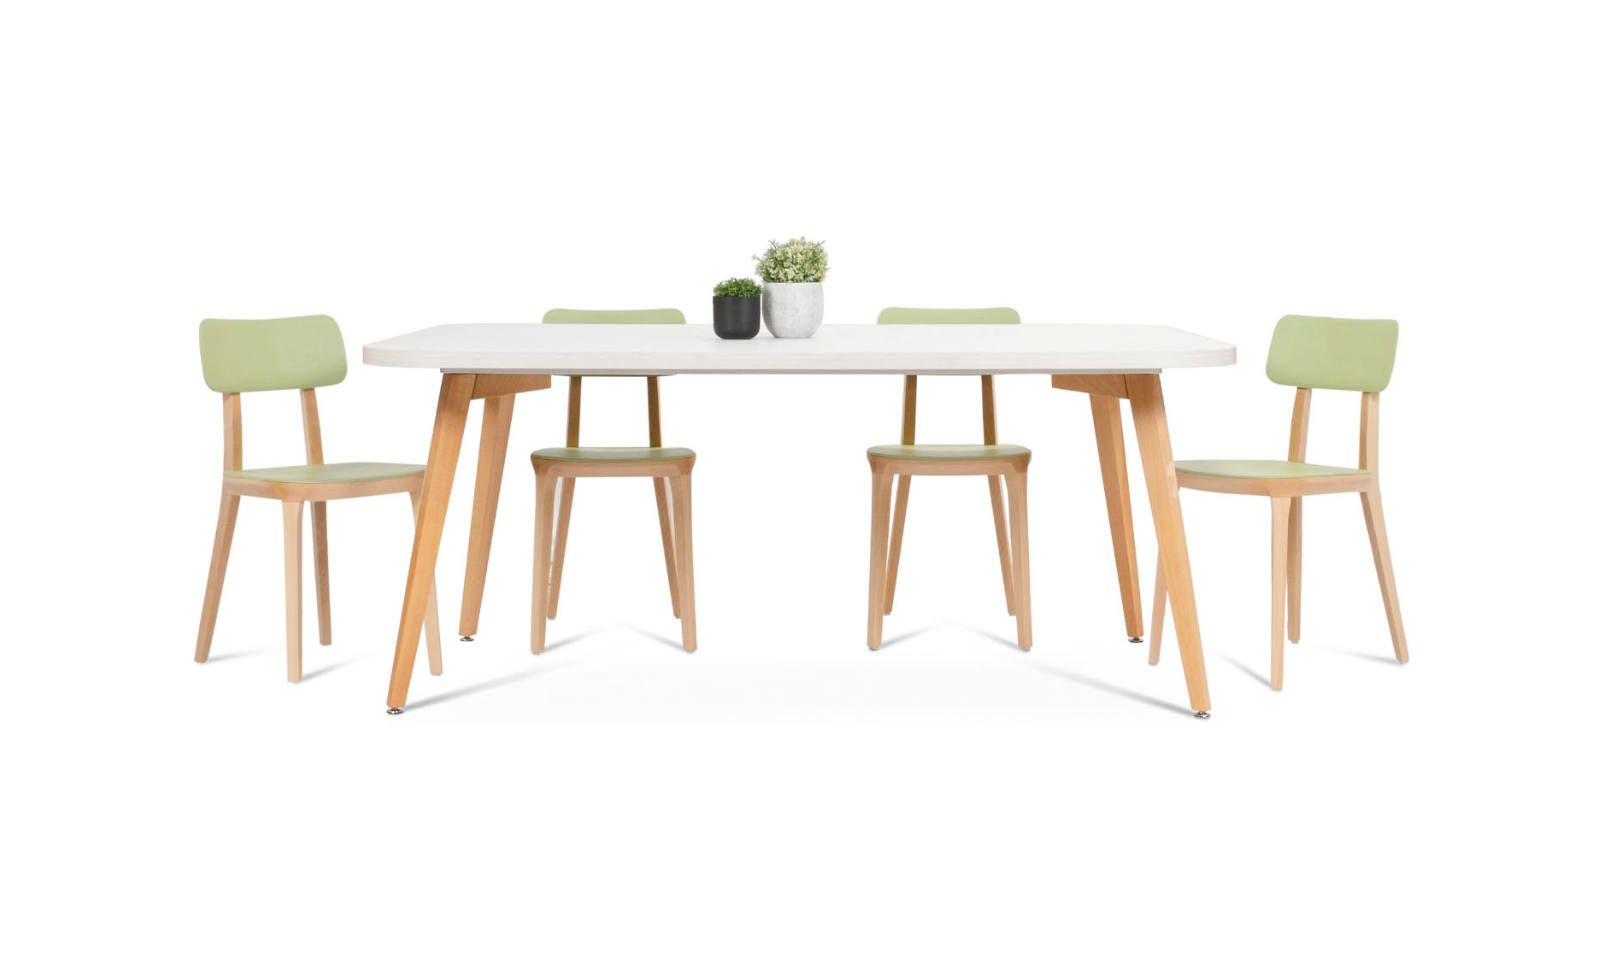 meeting table with timber legs